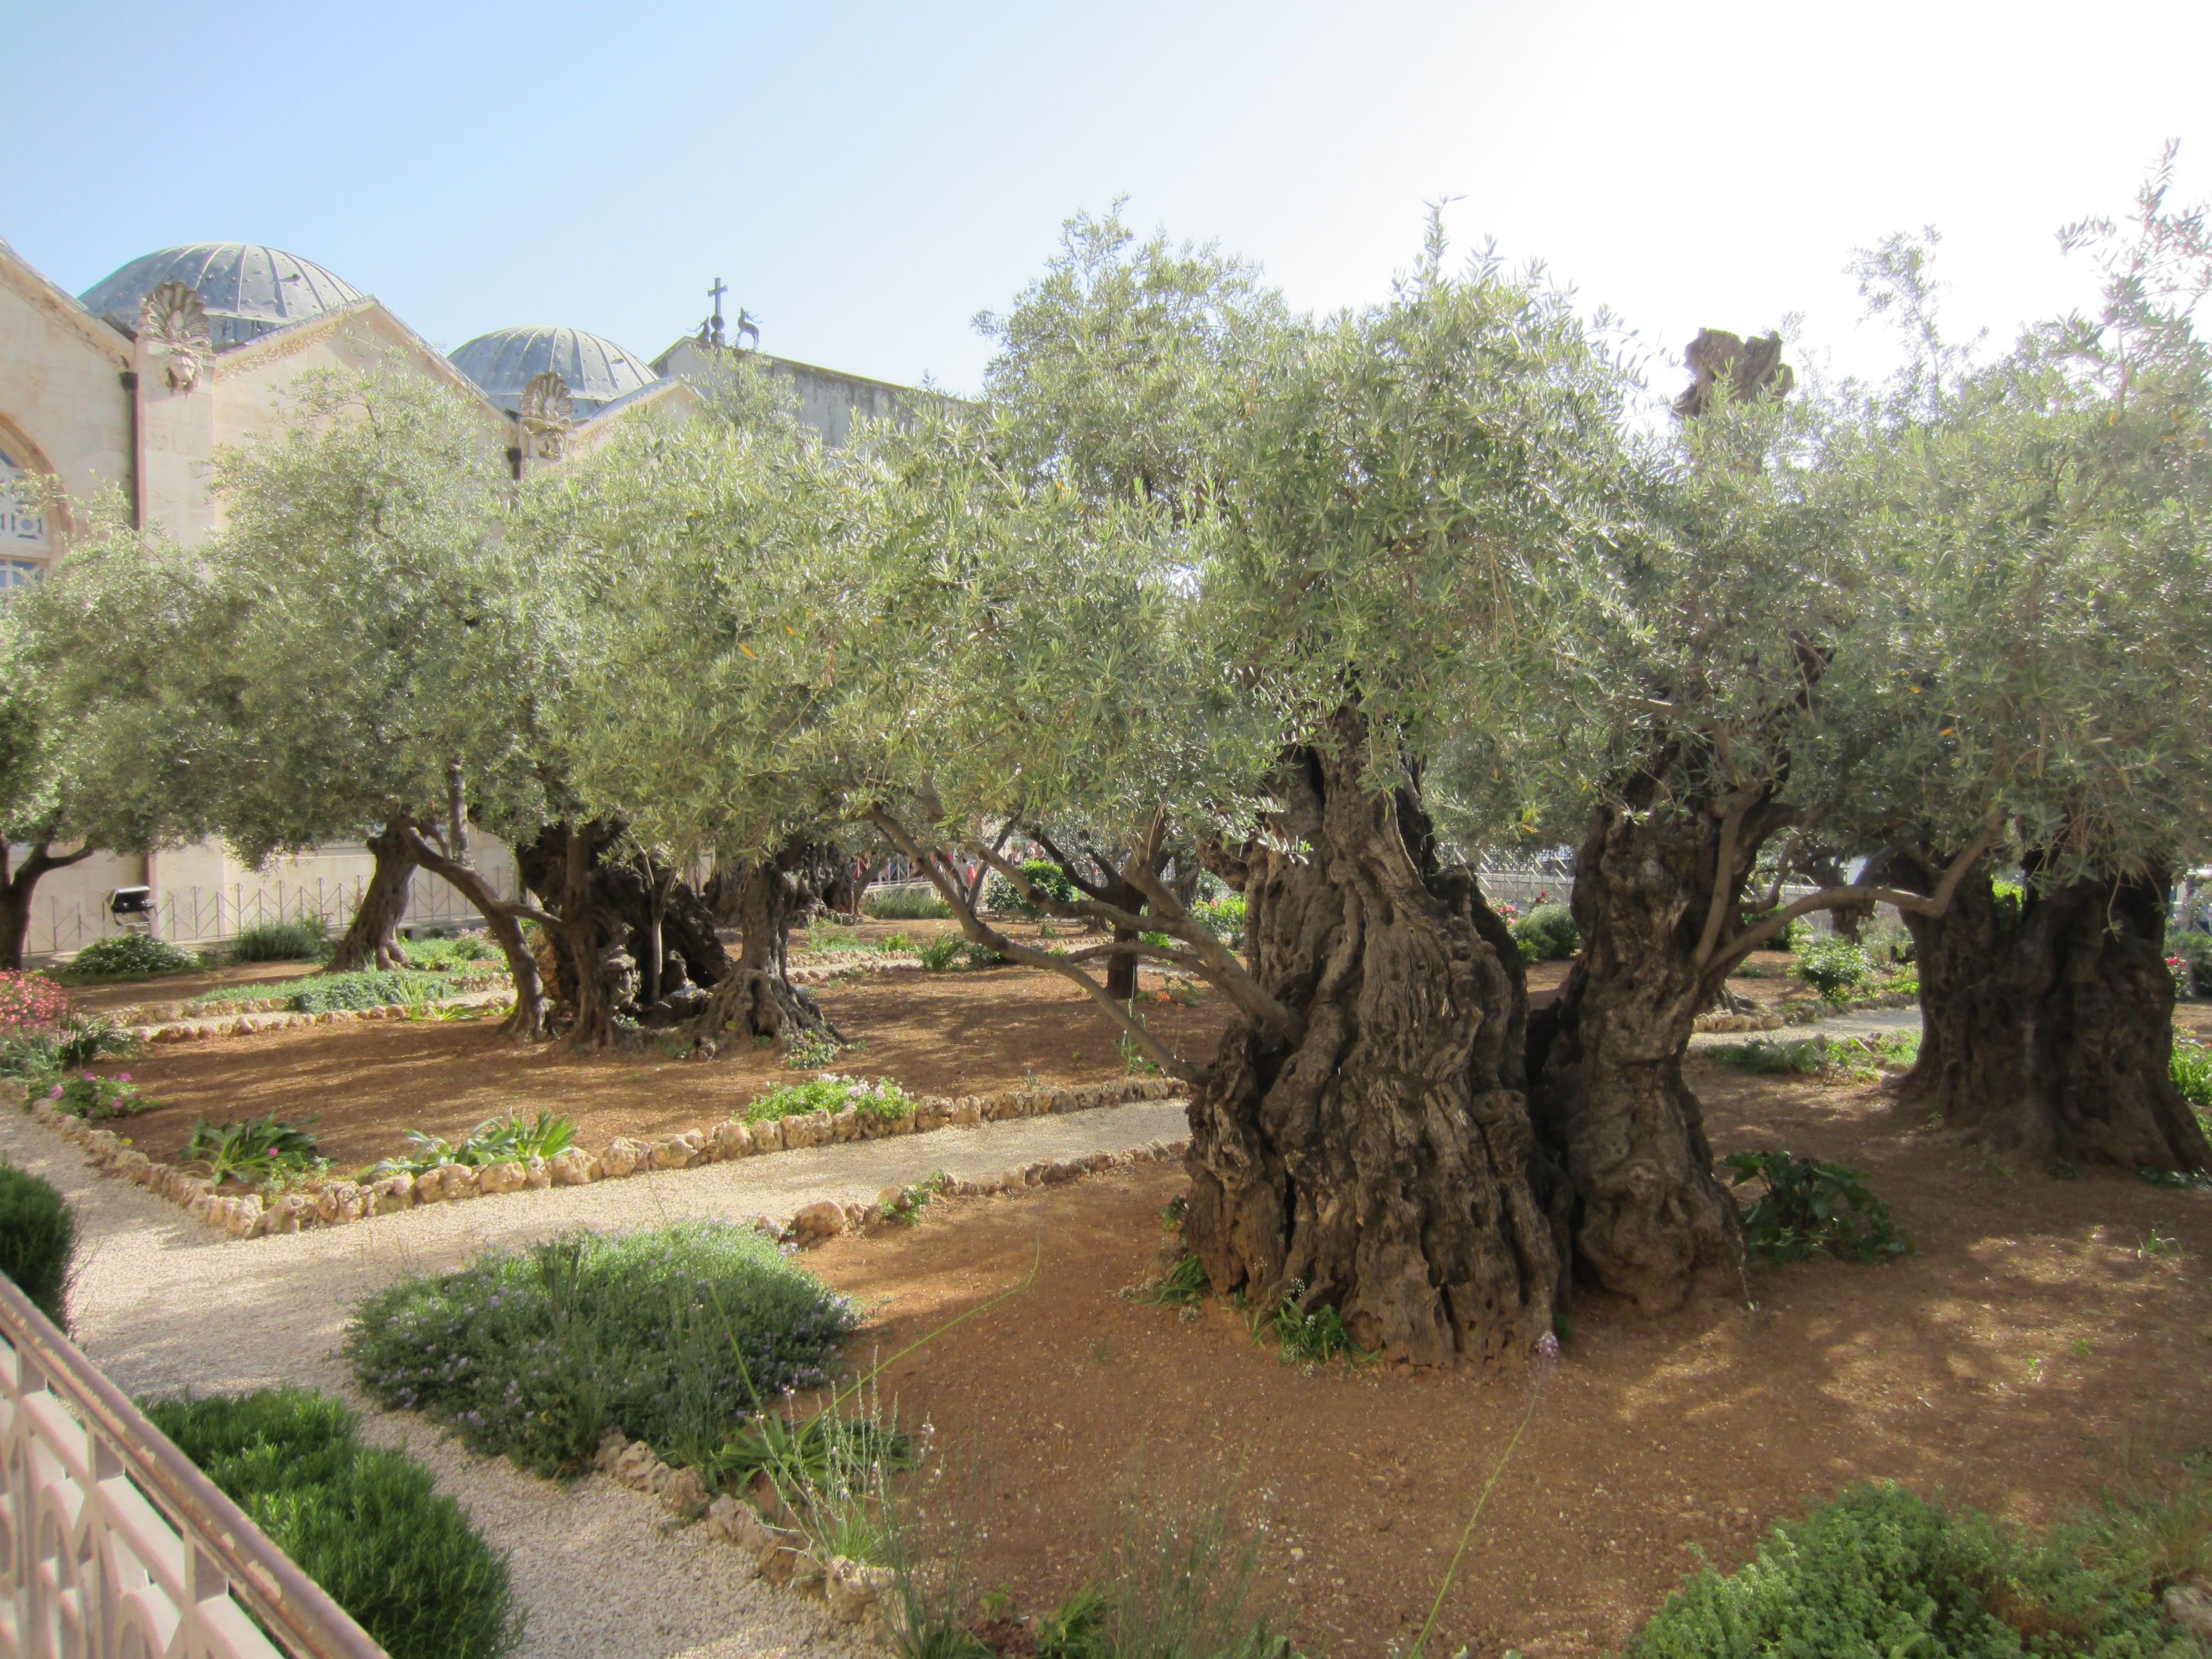 The olive trees in the garden of gethsemane where jesus for Age olive trees garden gethsemane